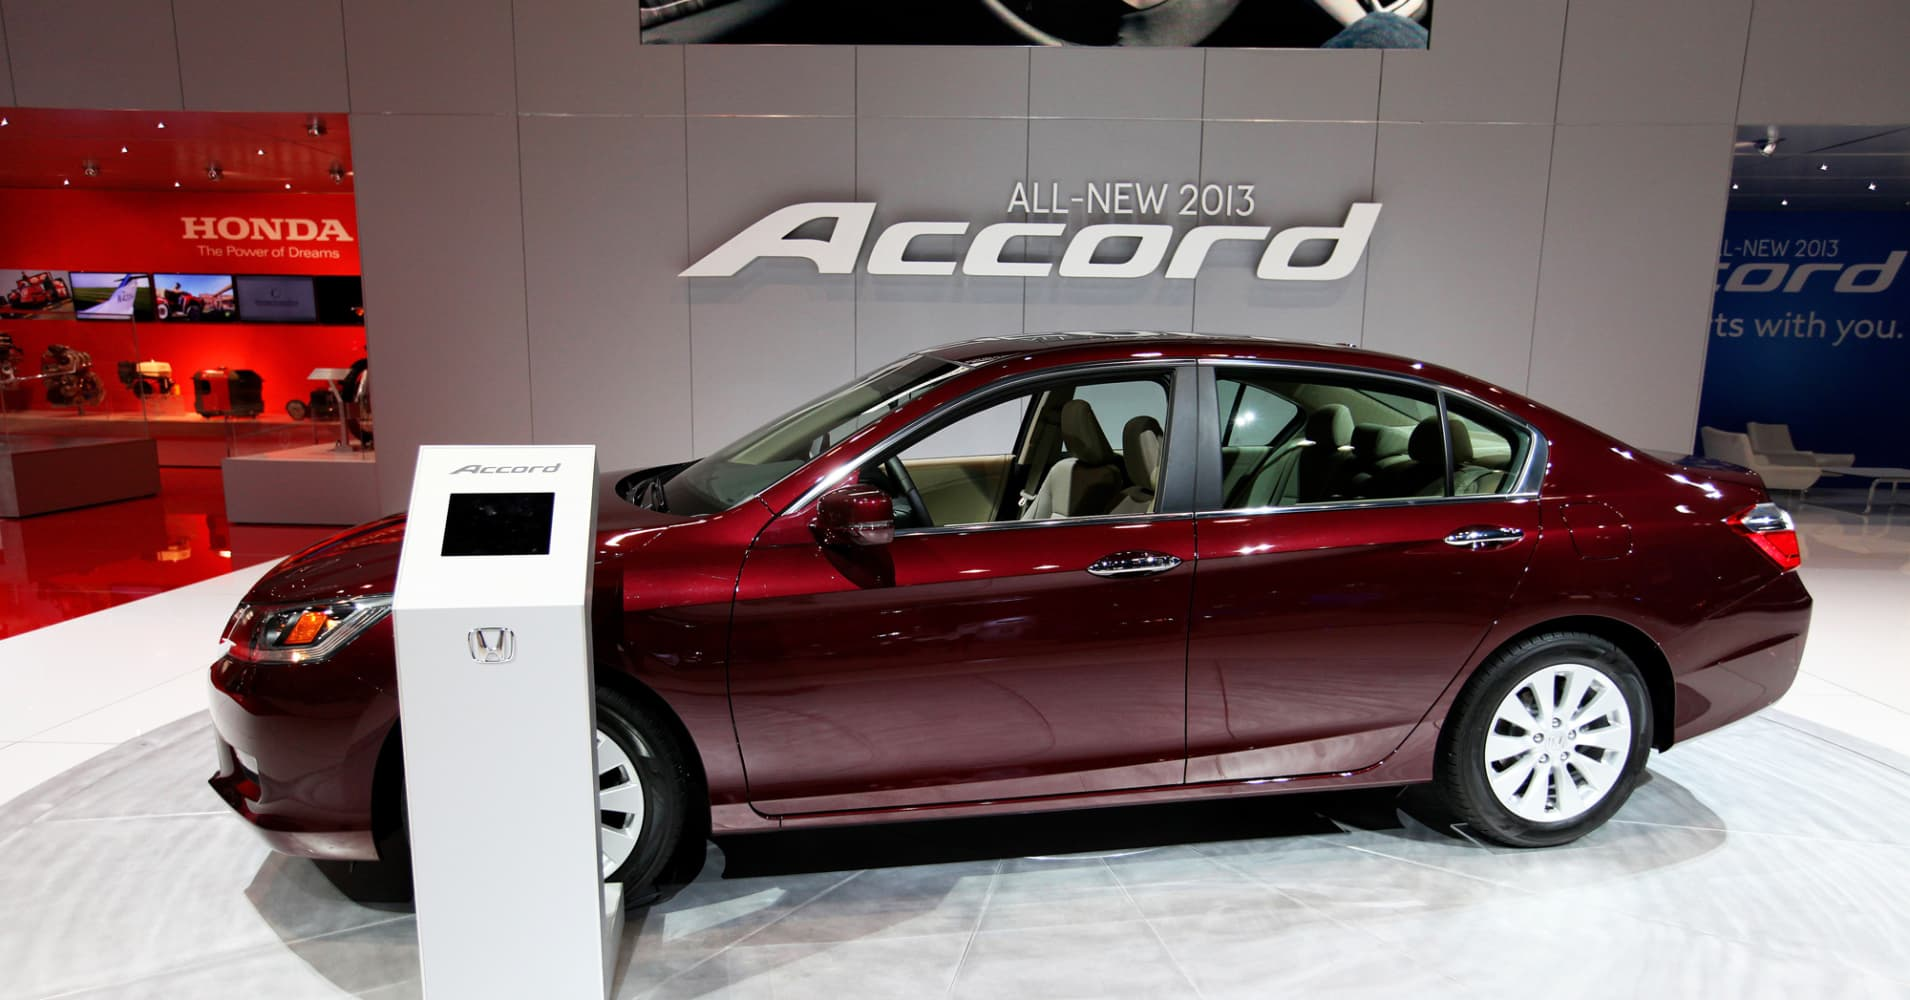 The 2013 Honda Accord, at the Chicago Auto Show, February, 2013.